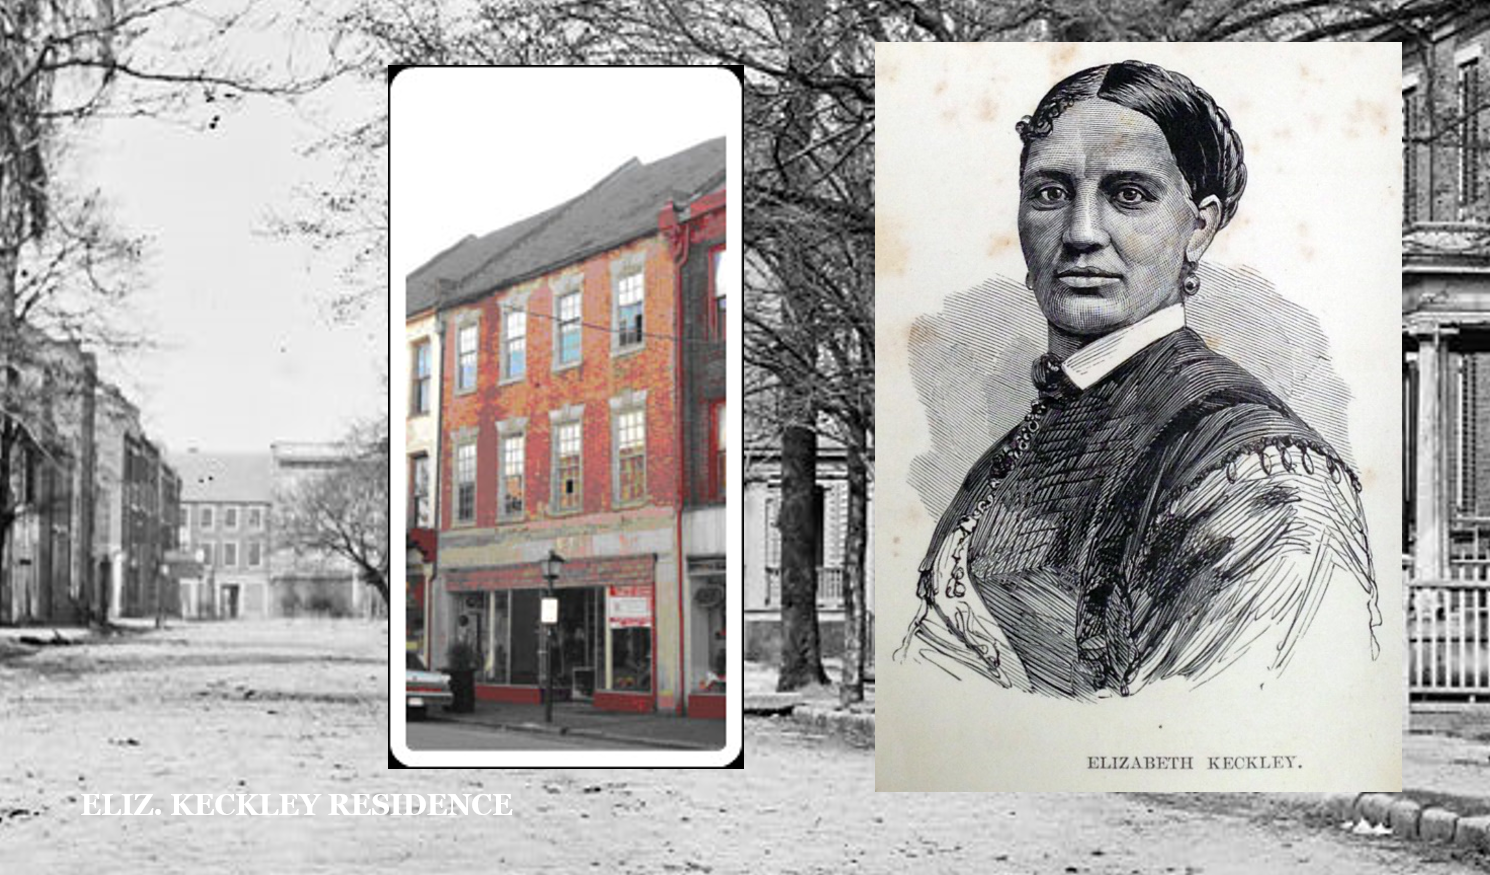 Elizabeth Keckley residence in 1844 while slave to Garland Family